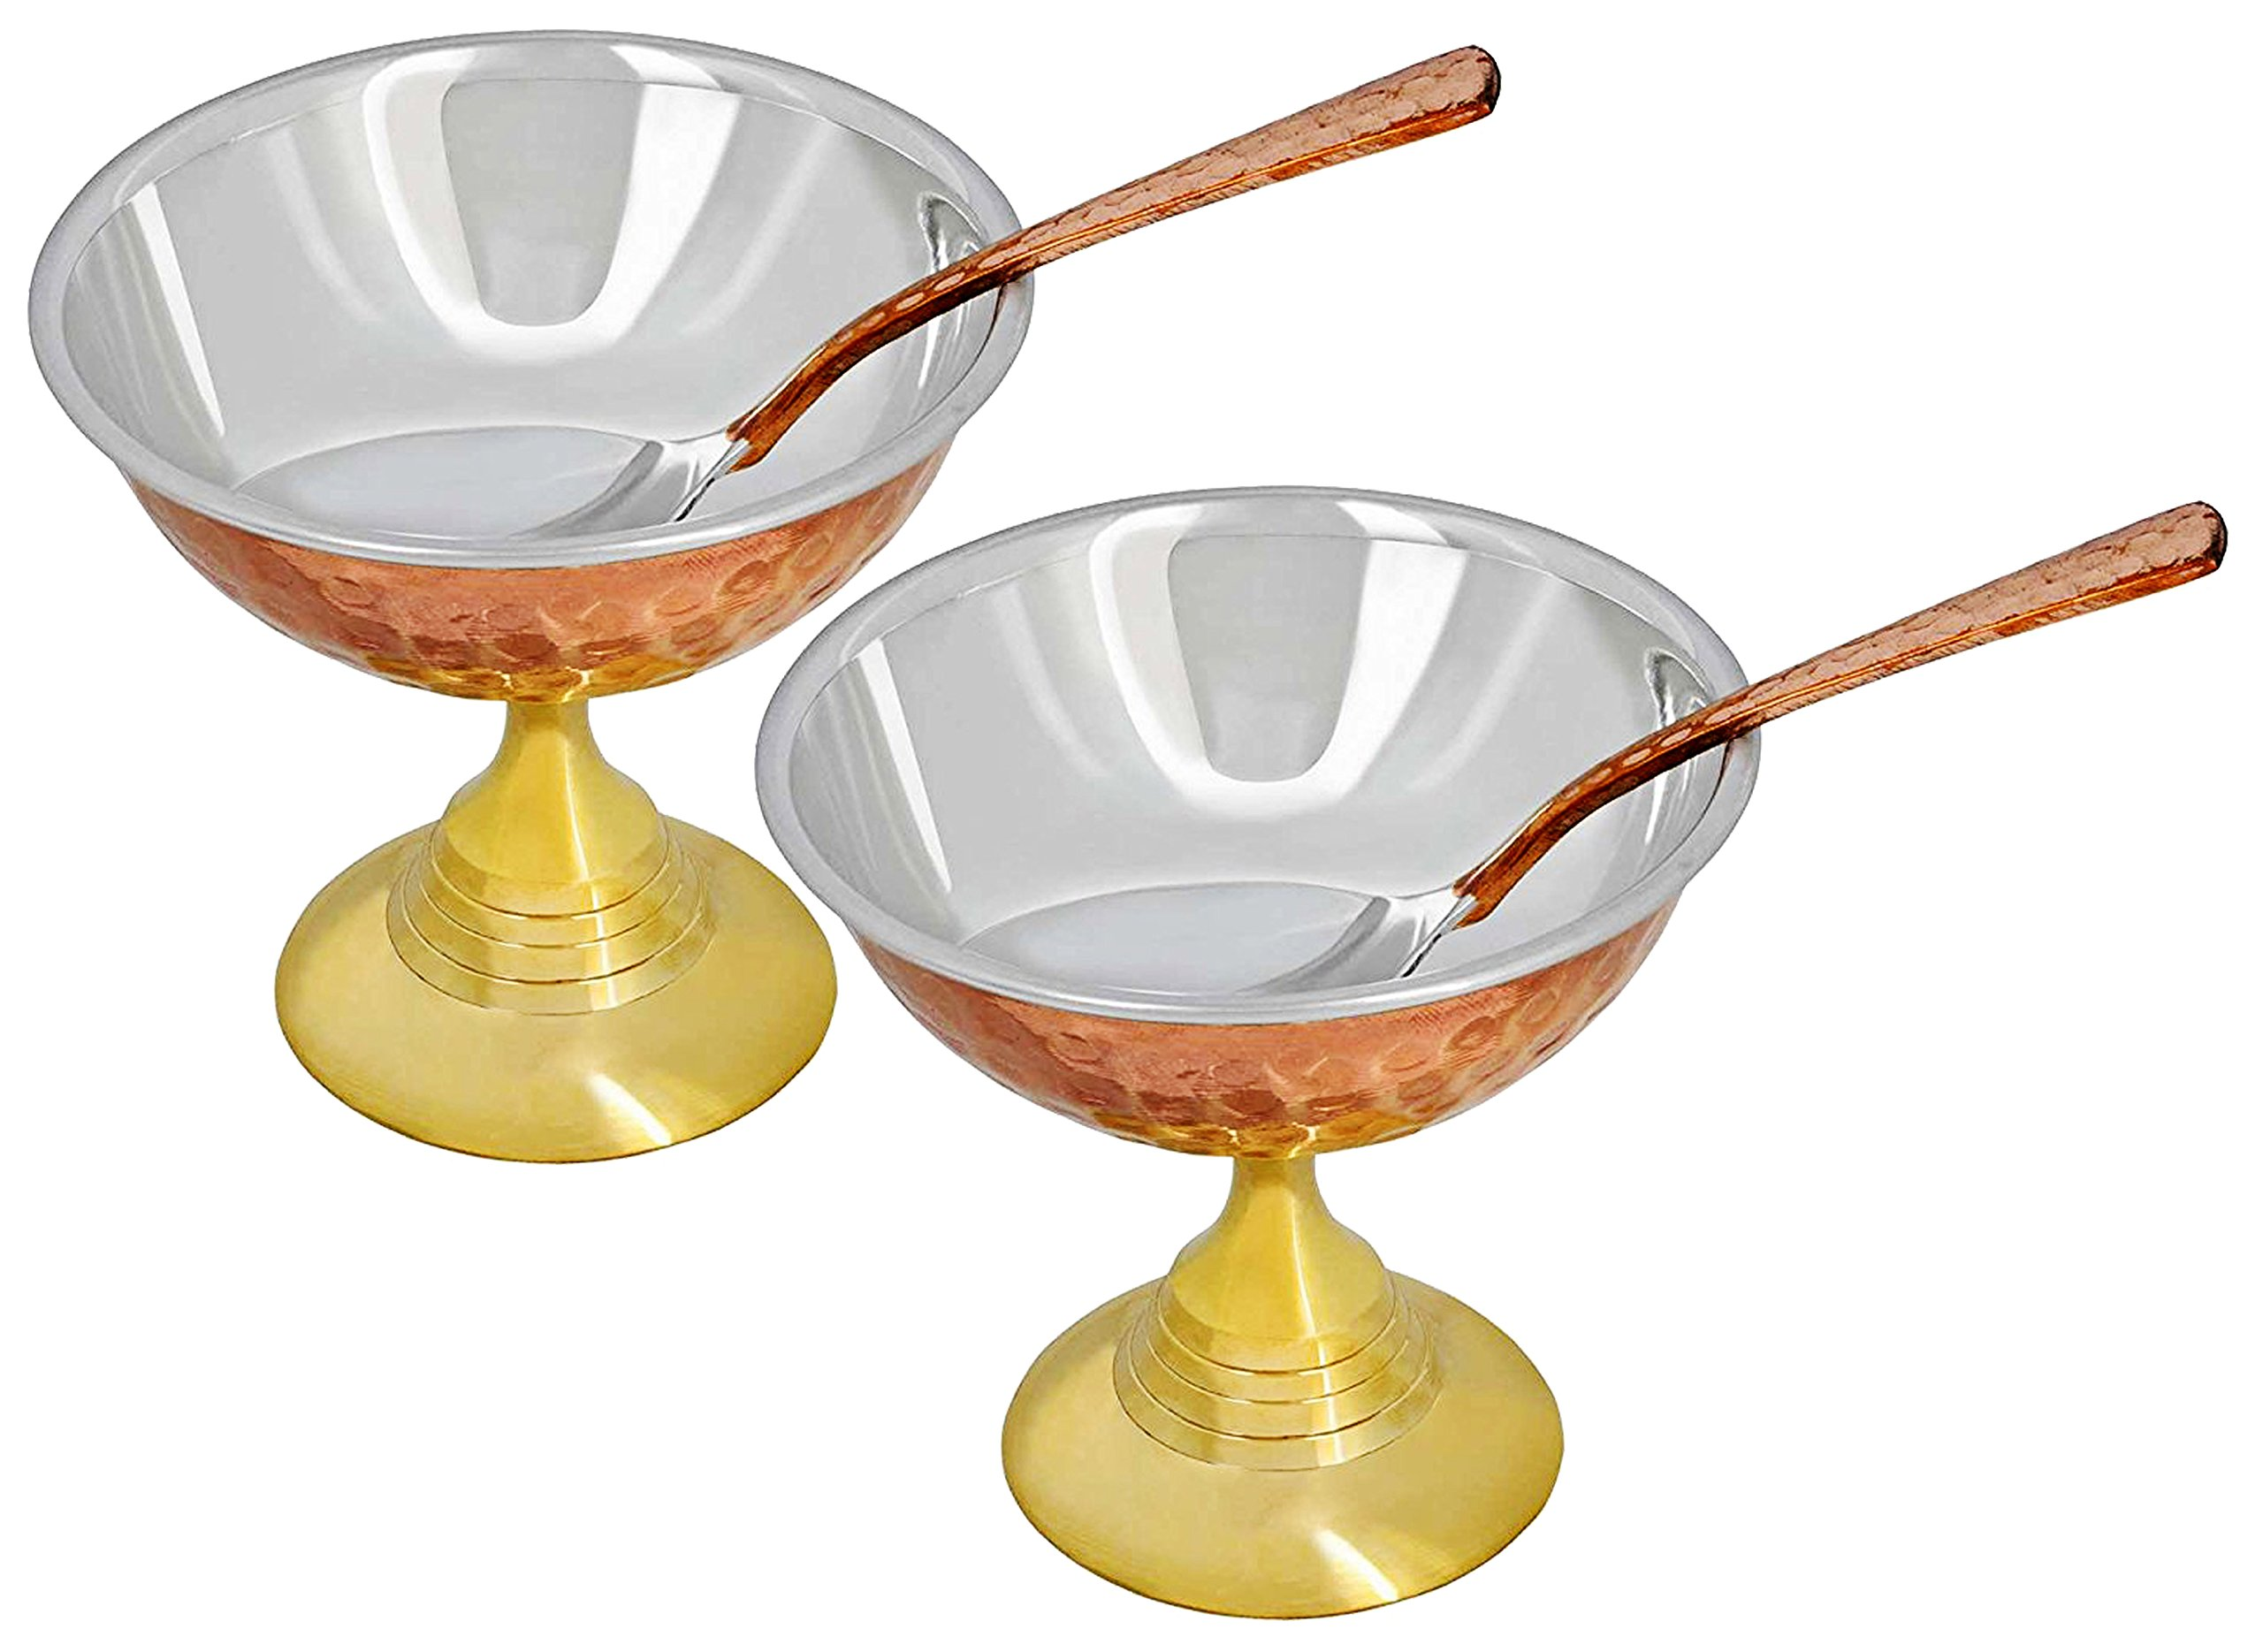 SKAVIJ Set of 2, Dessert Bowls with Spoon for Desserts Copper Stainless Steel Tableware, Diameter 4 Inches